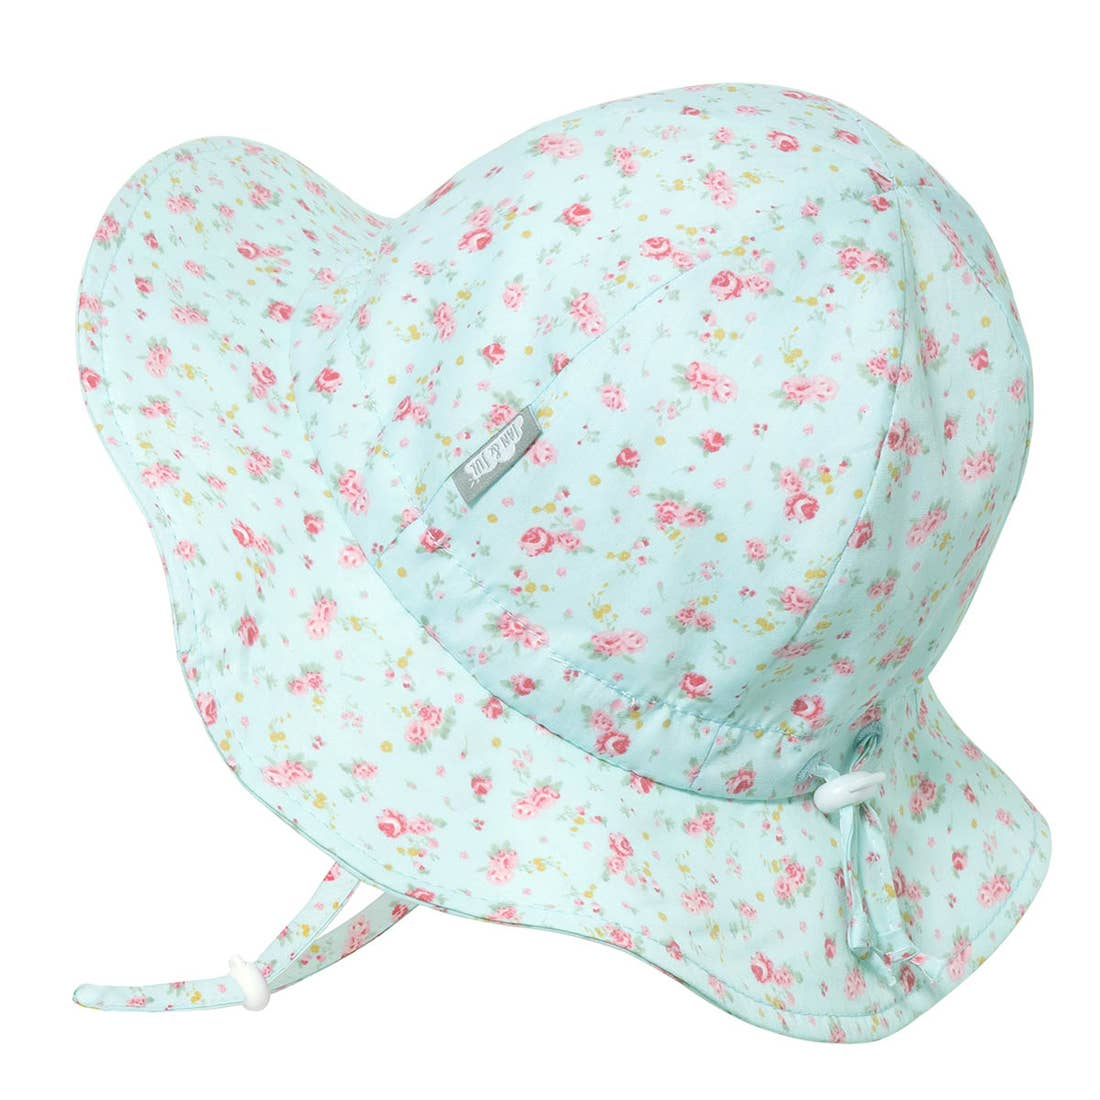 Retro Rose Cotton Floppy Sun Hat